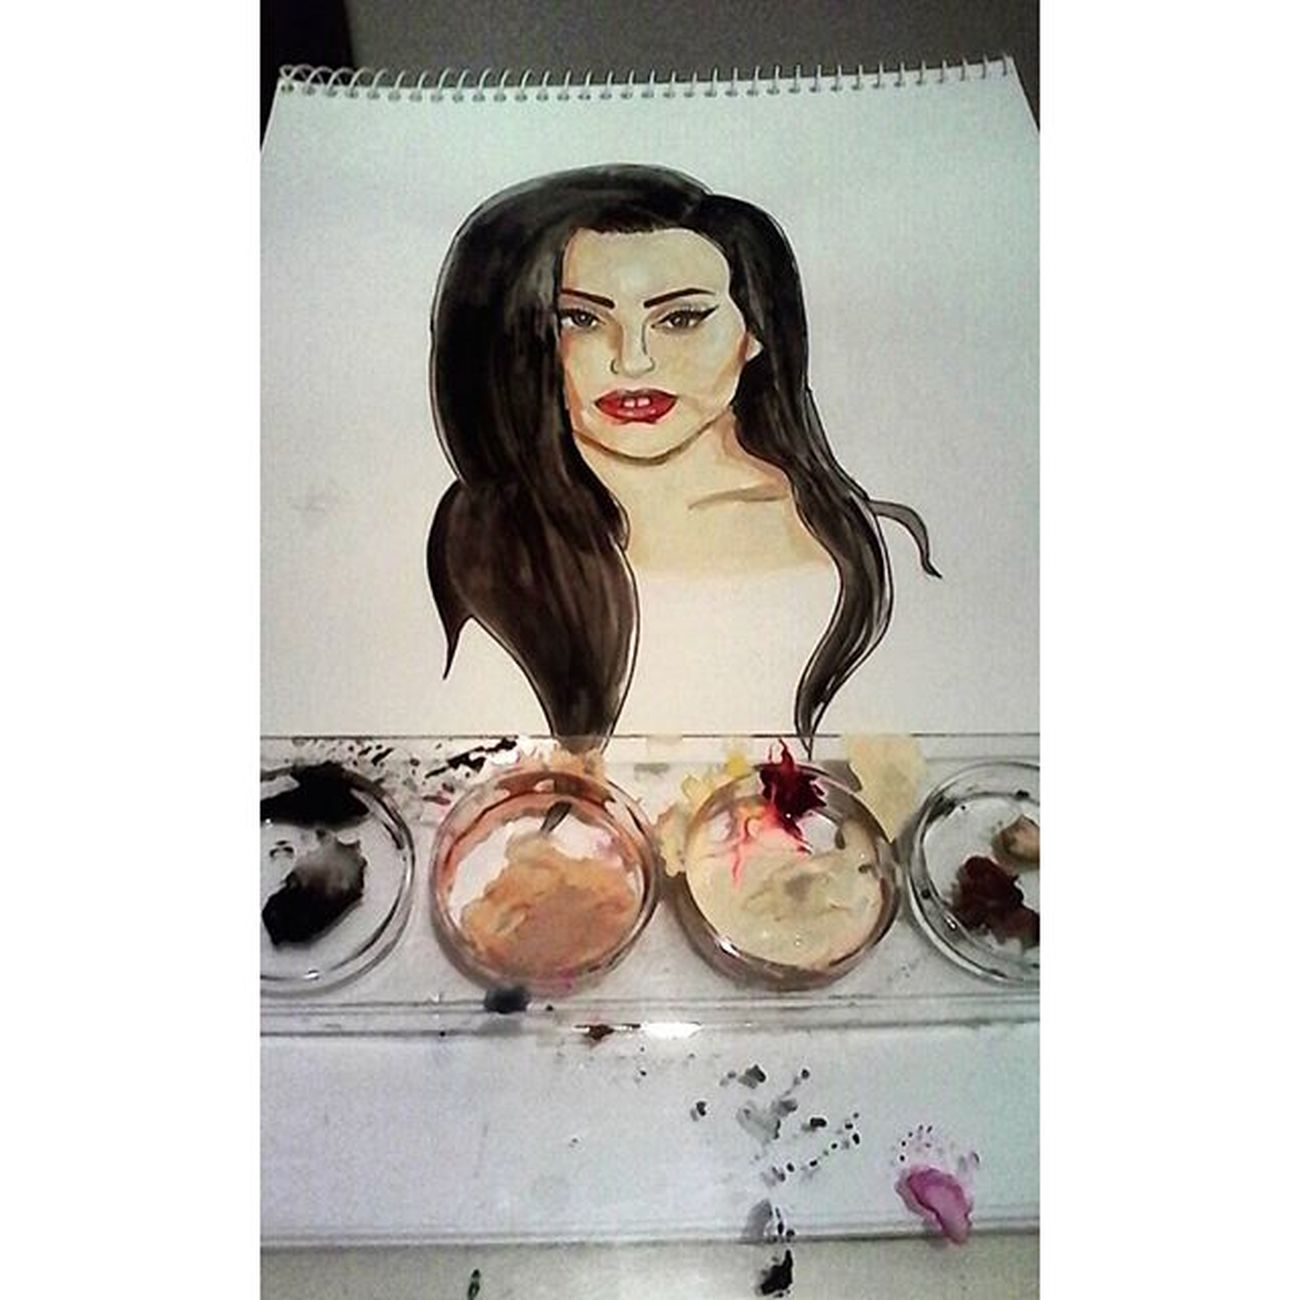 @ladygaga in progress ❤ Art Ladygaga Gaga Artist Draw Drawing Paint Painting Sketching Sketch Illustration Graphic Arts_help Instadaily Instagood Instamood Pic Picture Picoftheday Photo Mothermonster Littlemonster Fanart Artistic Photooftheday